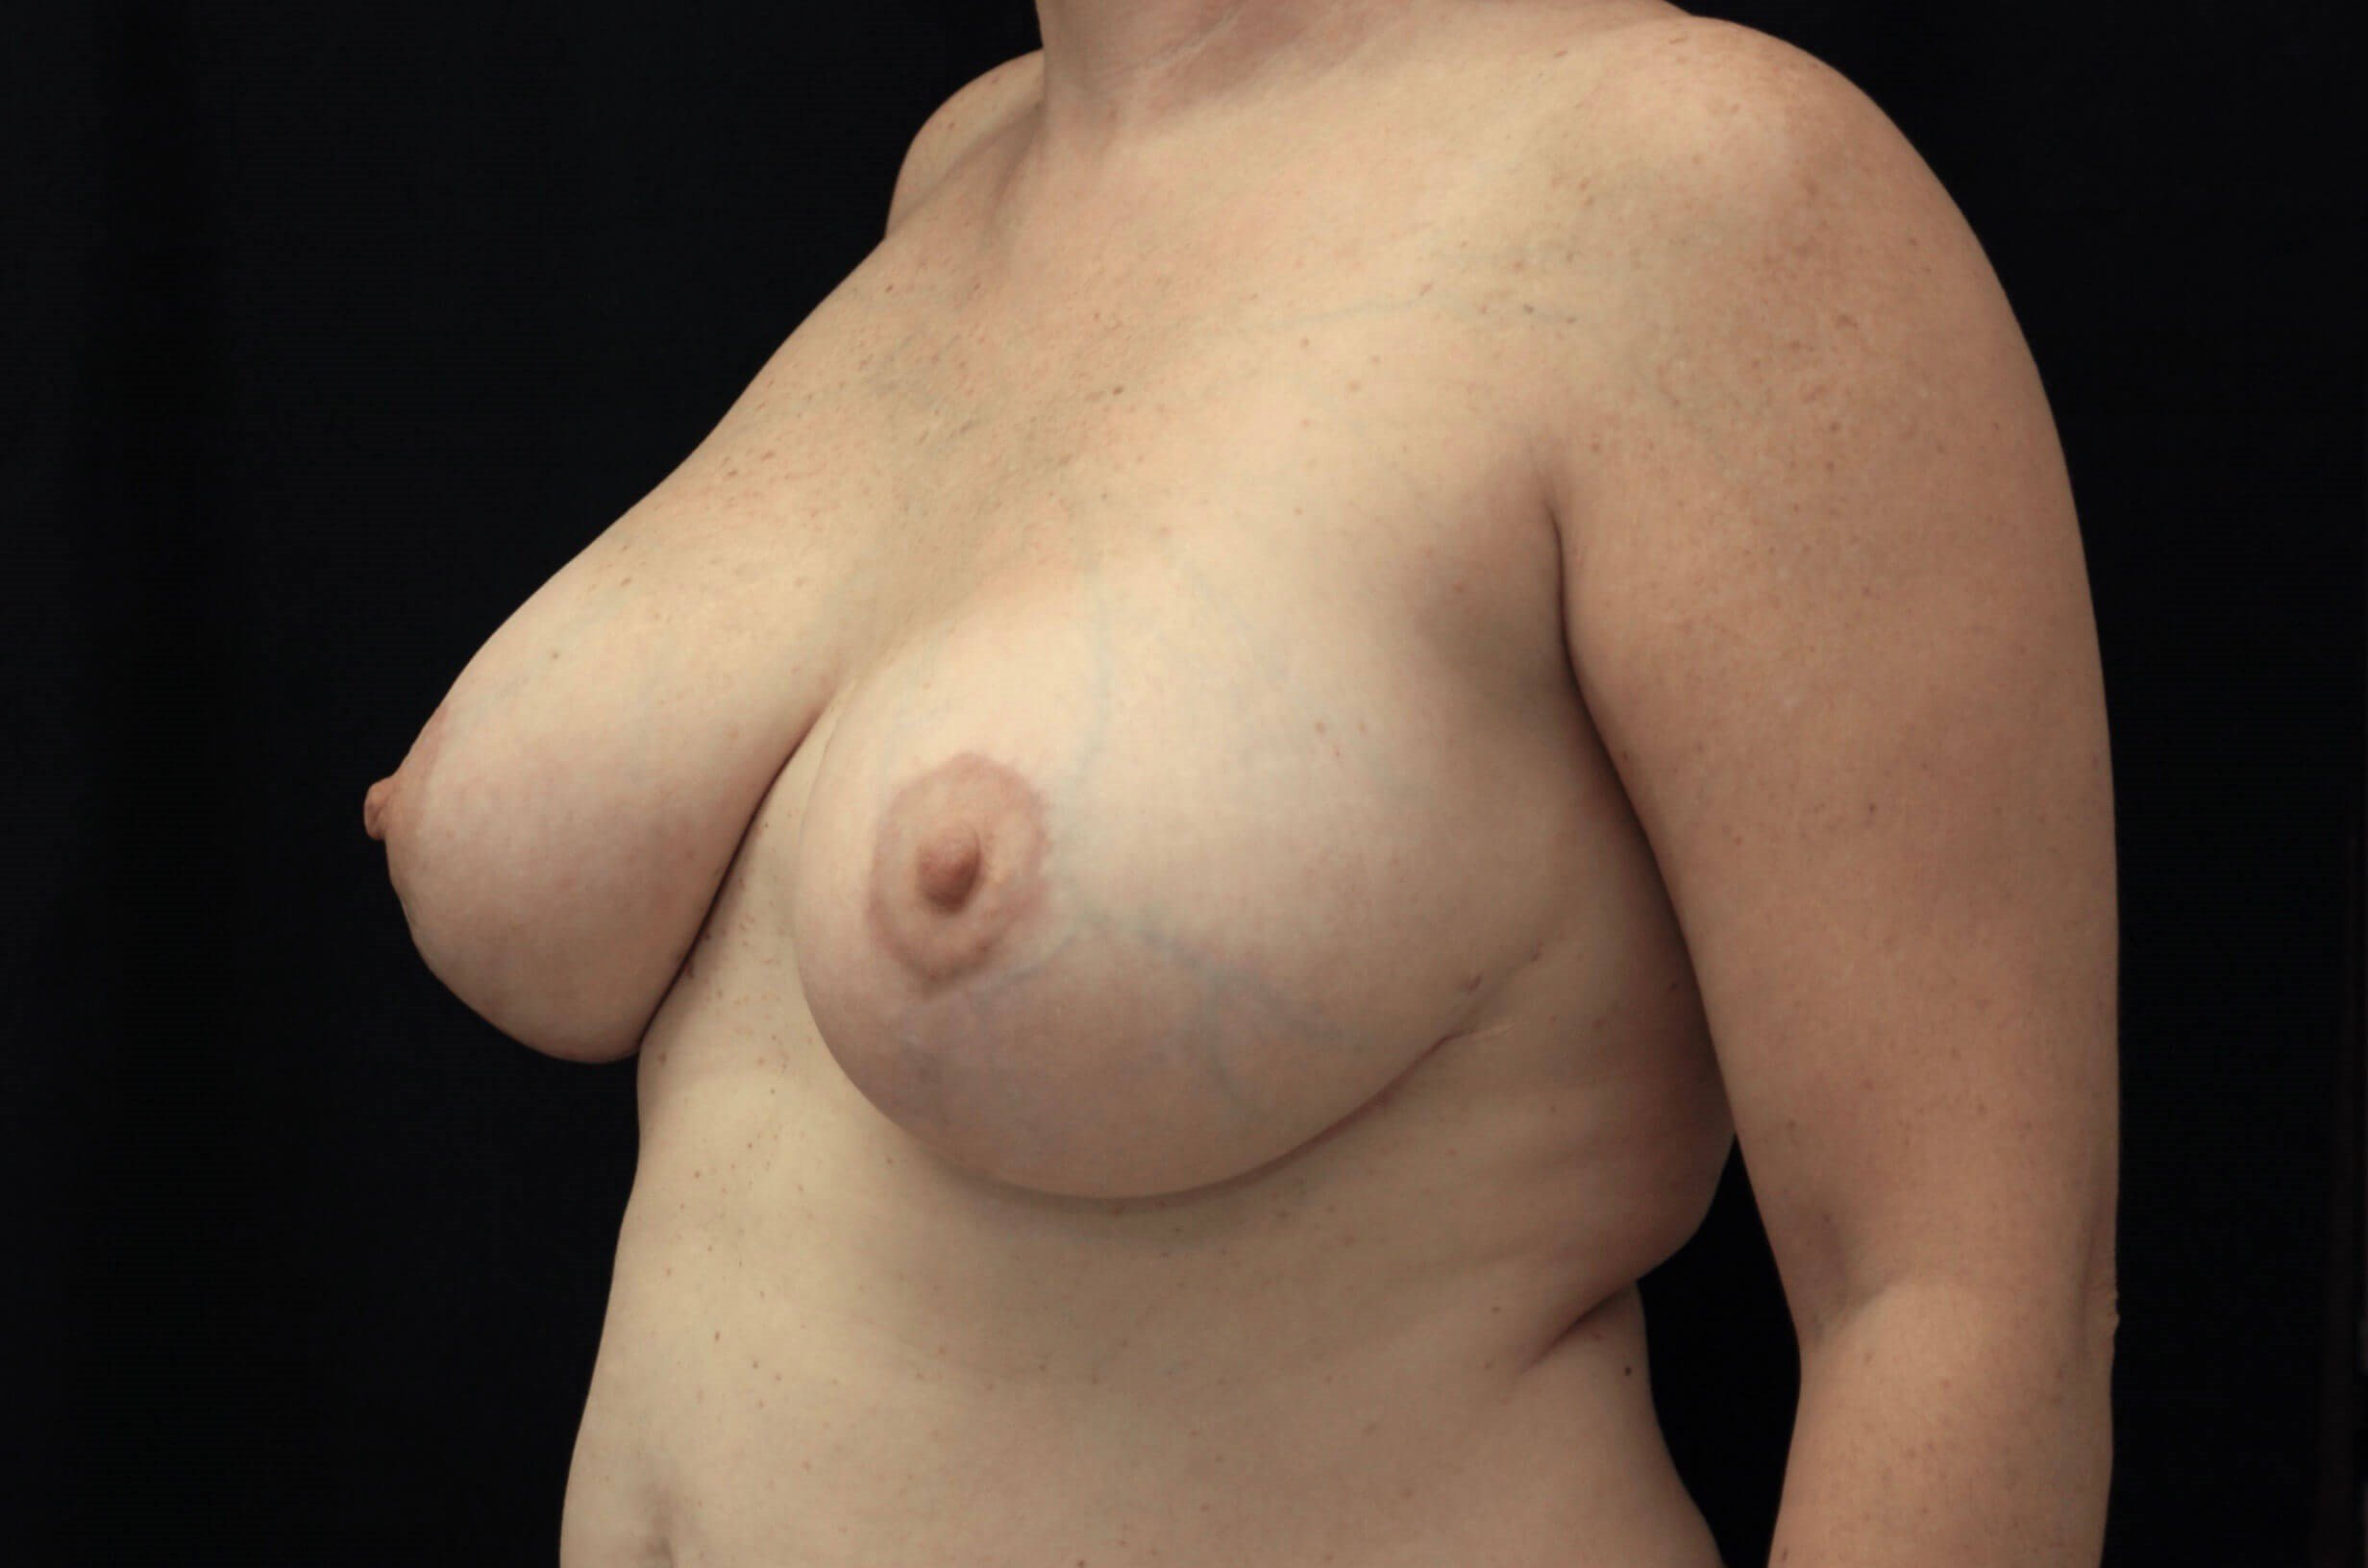 Breast Reduction with Implants After Breast Aug/Reduction